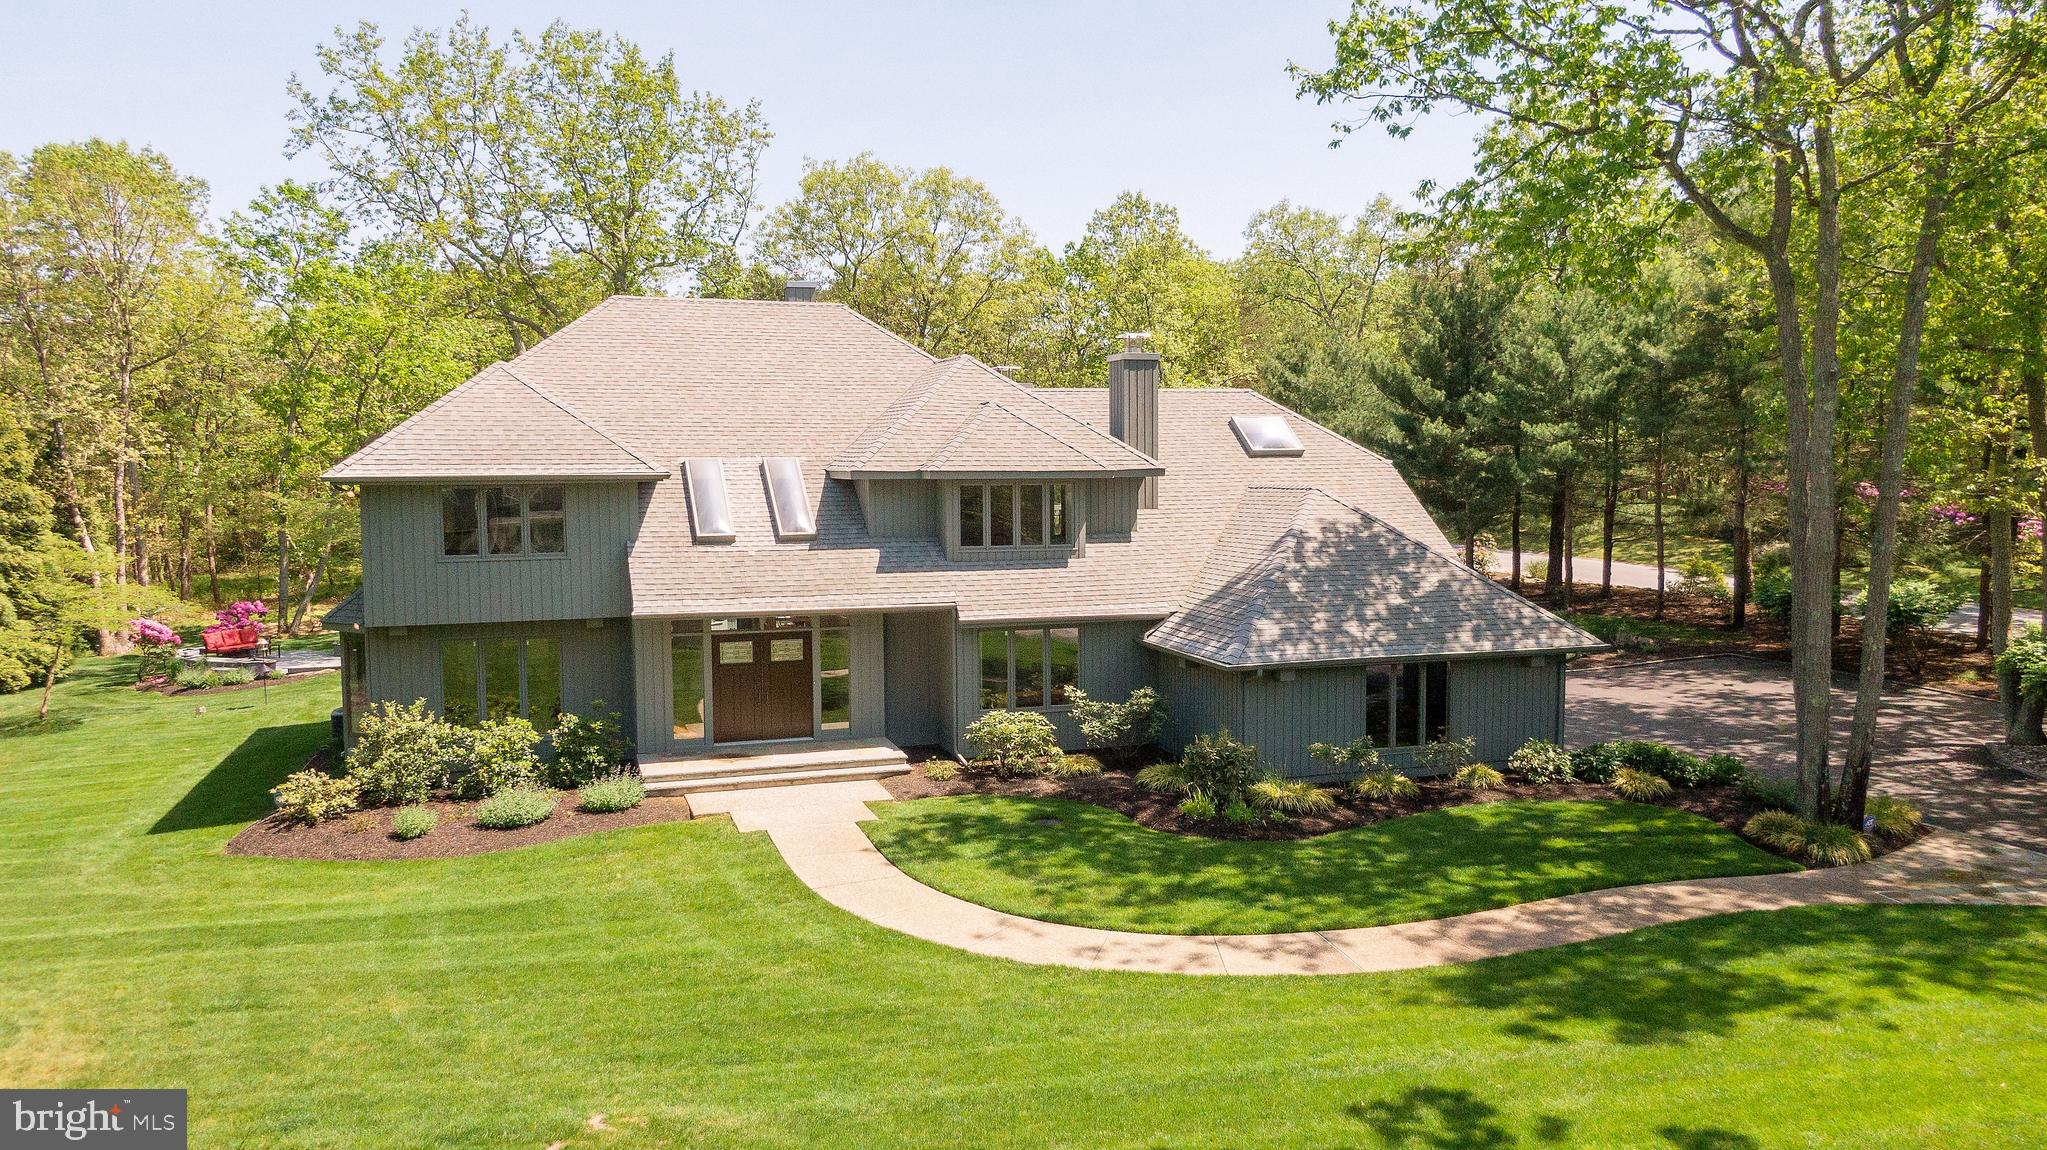 Situated on 2.5 acres